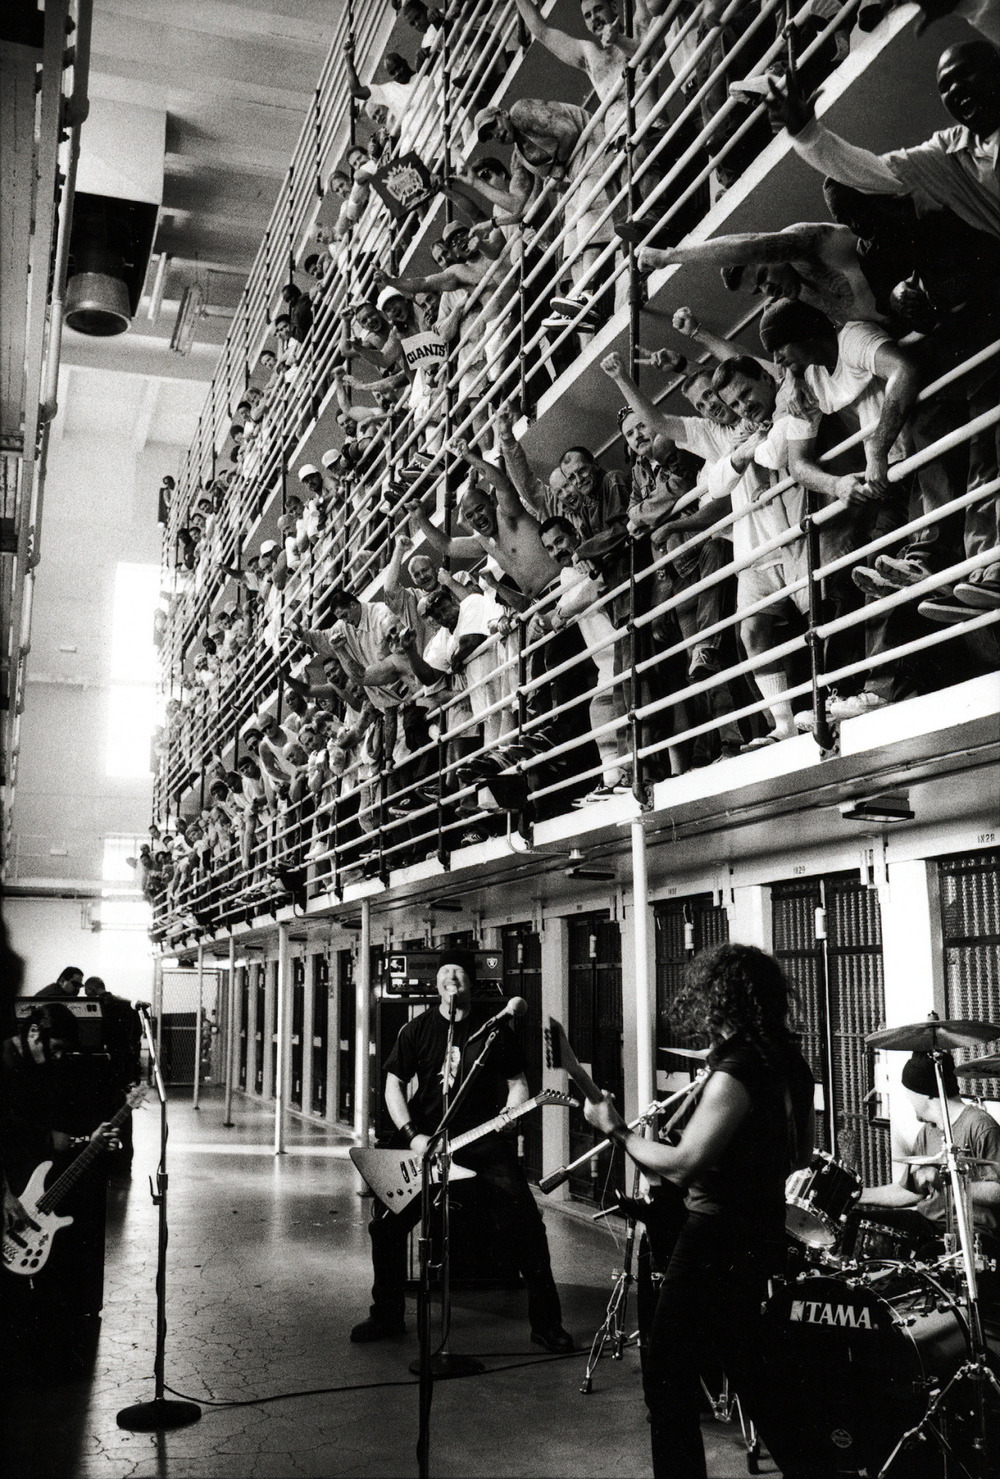 Metallica preforming at San Quentin State Prison (2003).